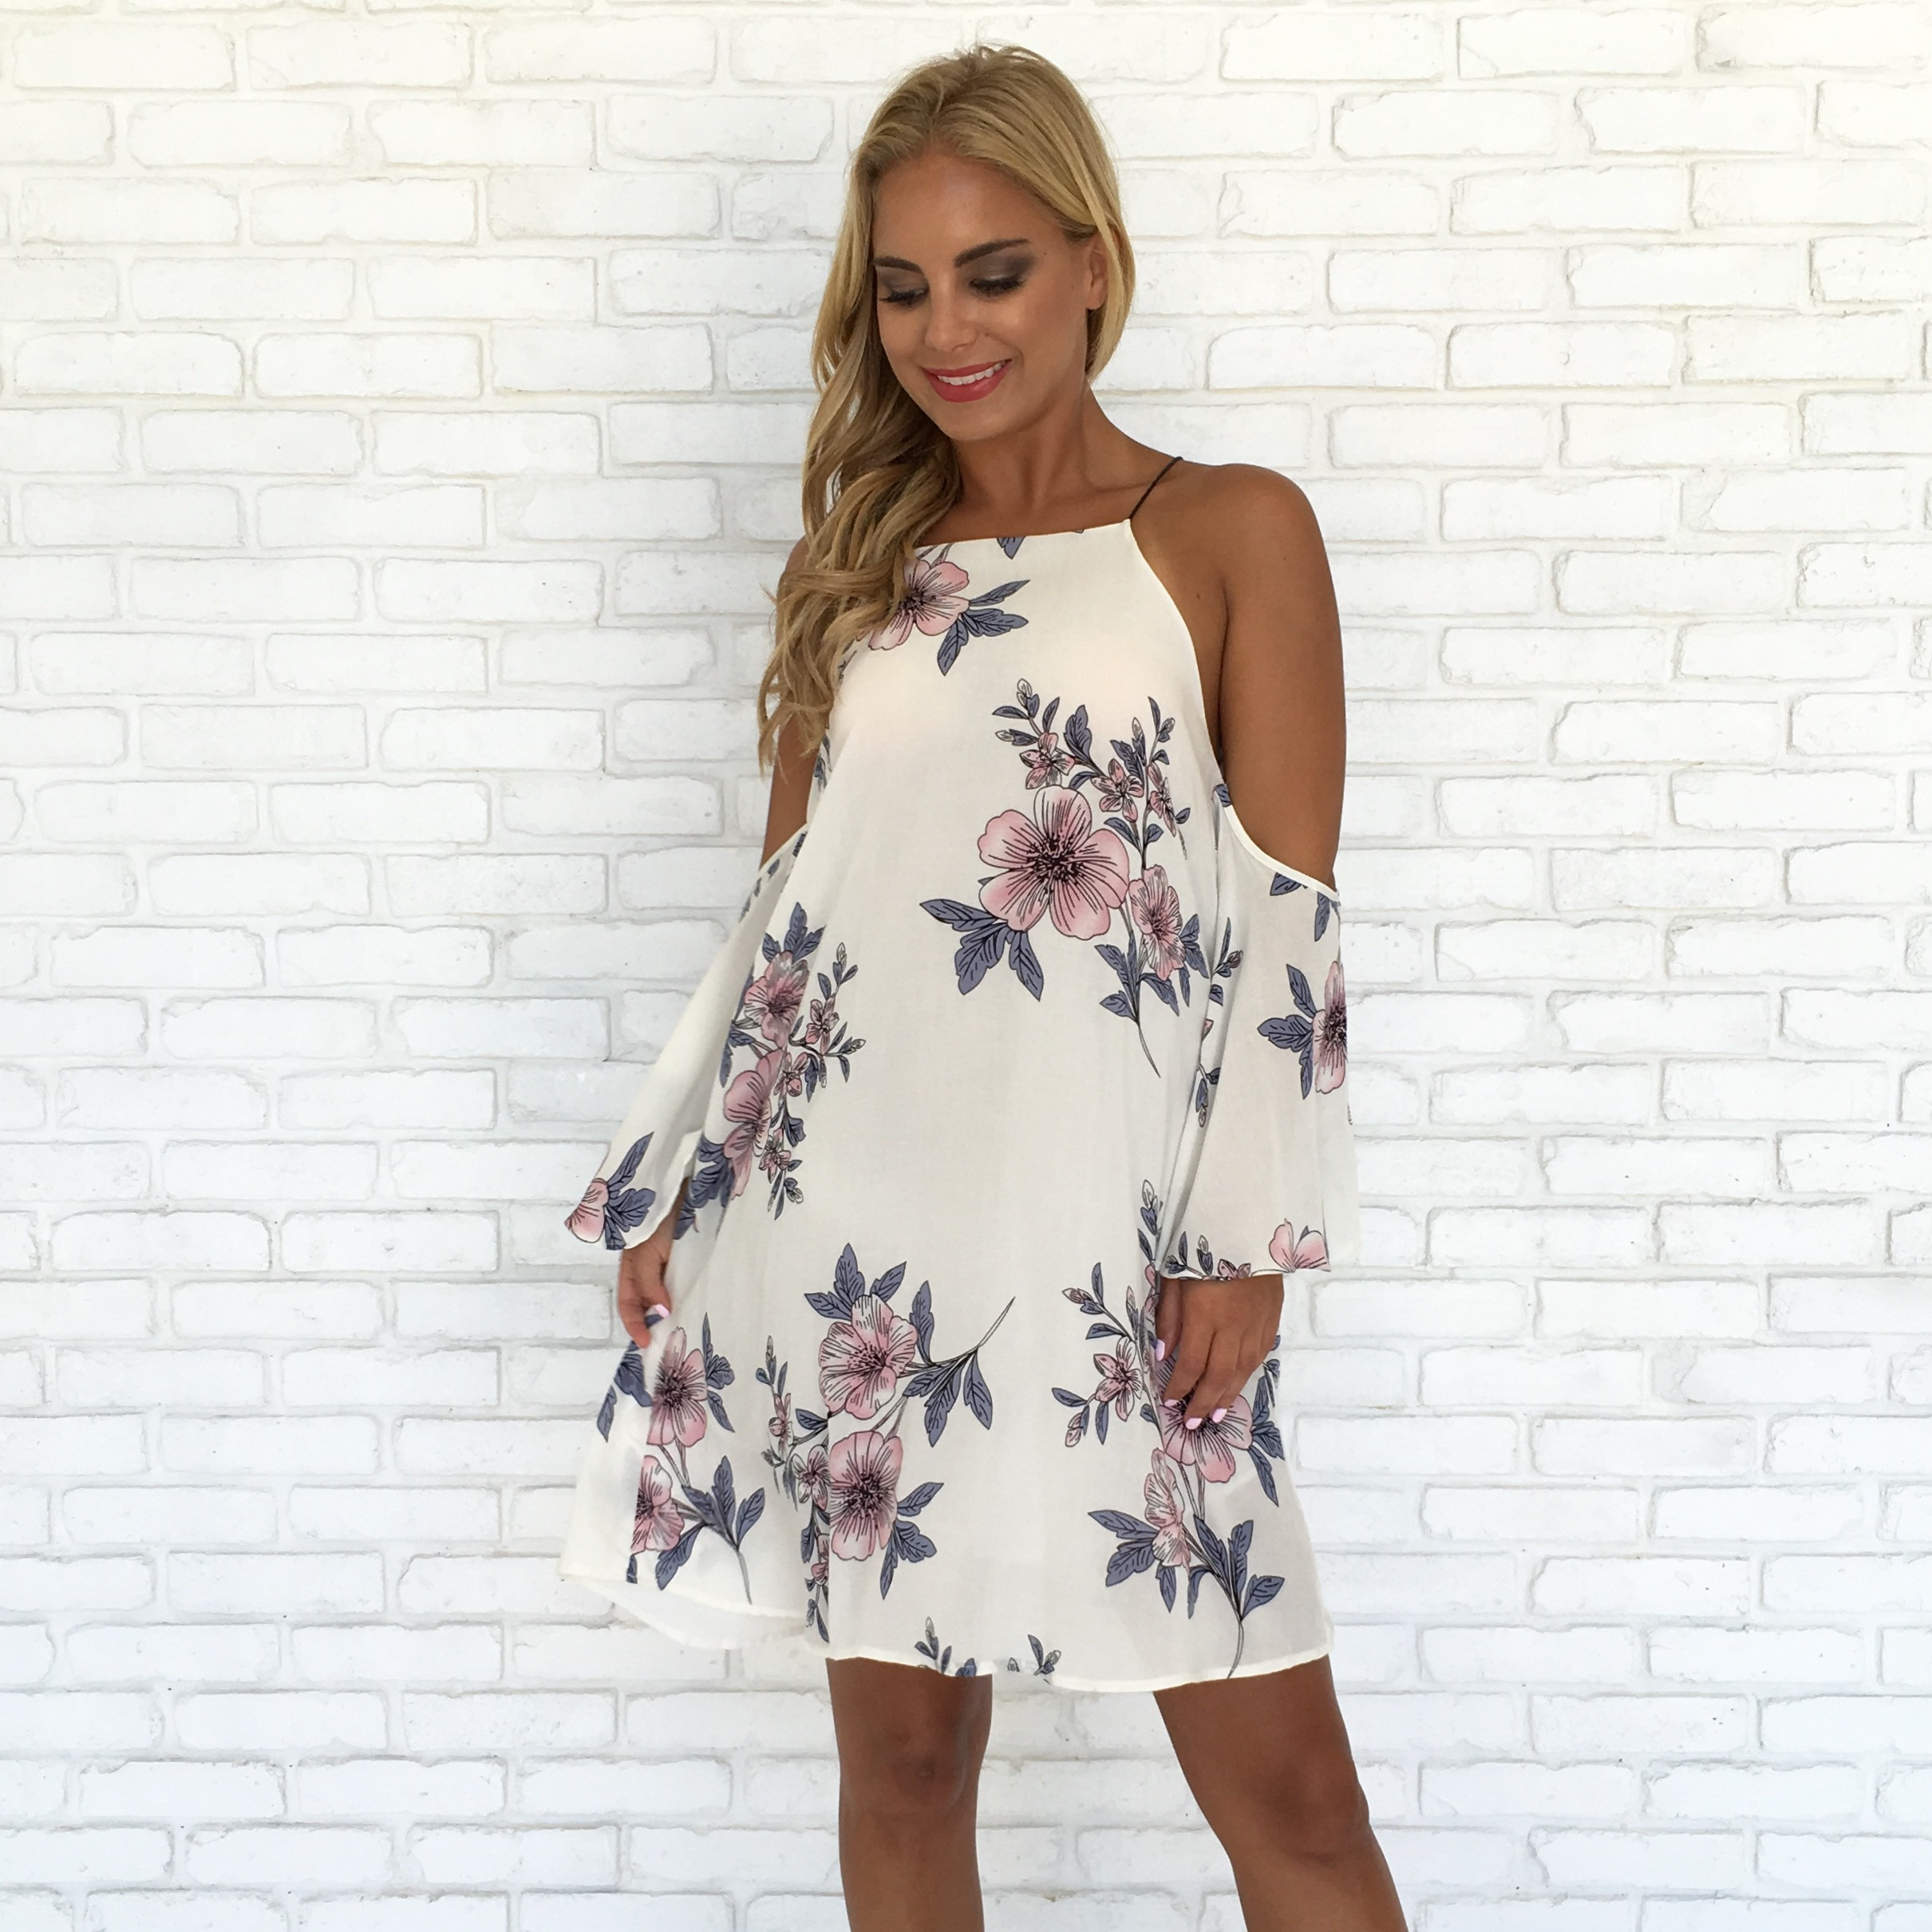 Here is another perfect short dress. I love the floral print. If you choose a dress with floral print though, try to select solid color outfits for everyone else in the photo. This dress would pair nicely with navy and pink! Shop this dress  here .